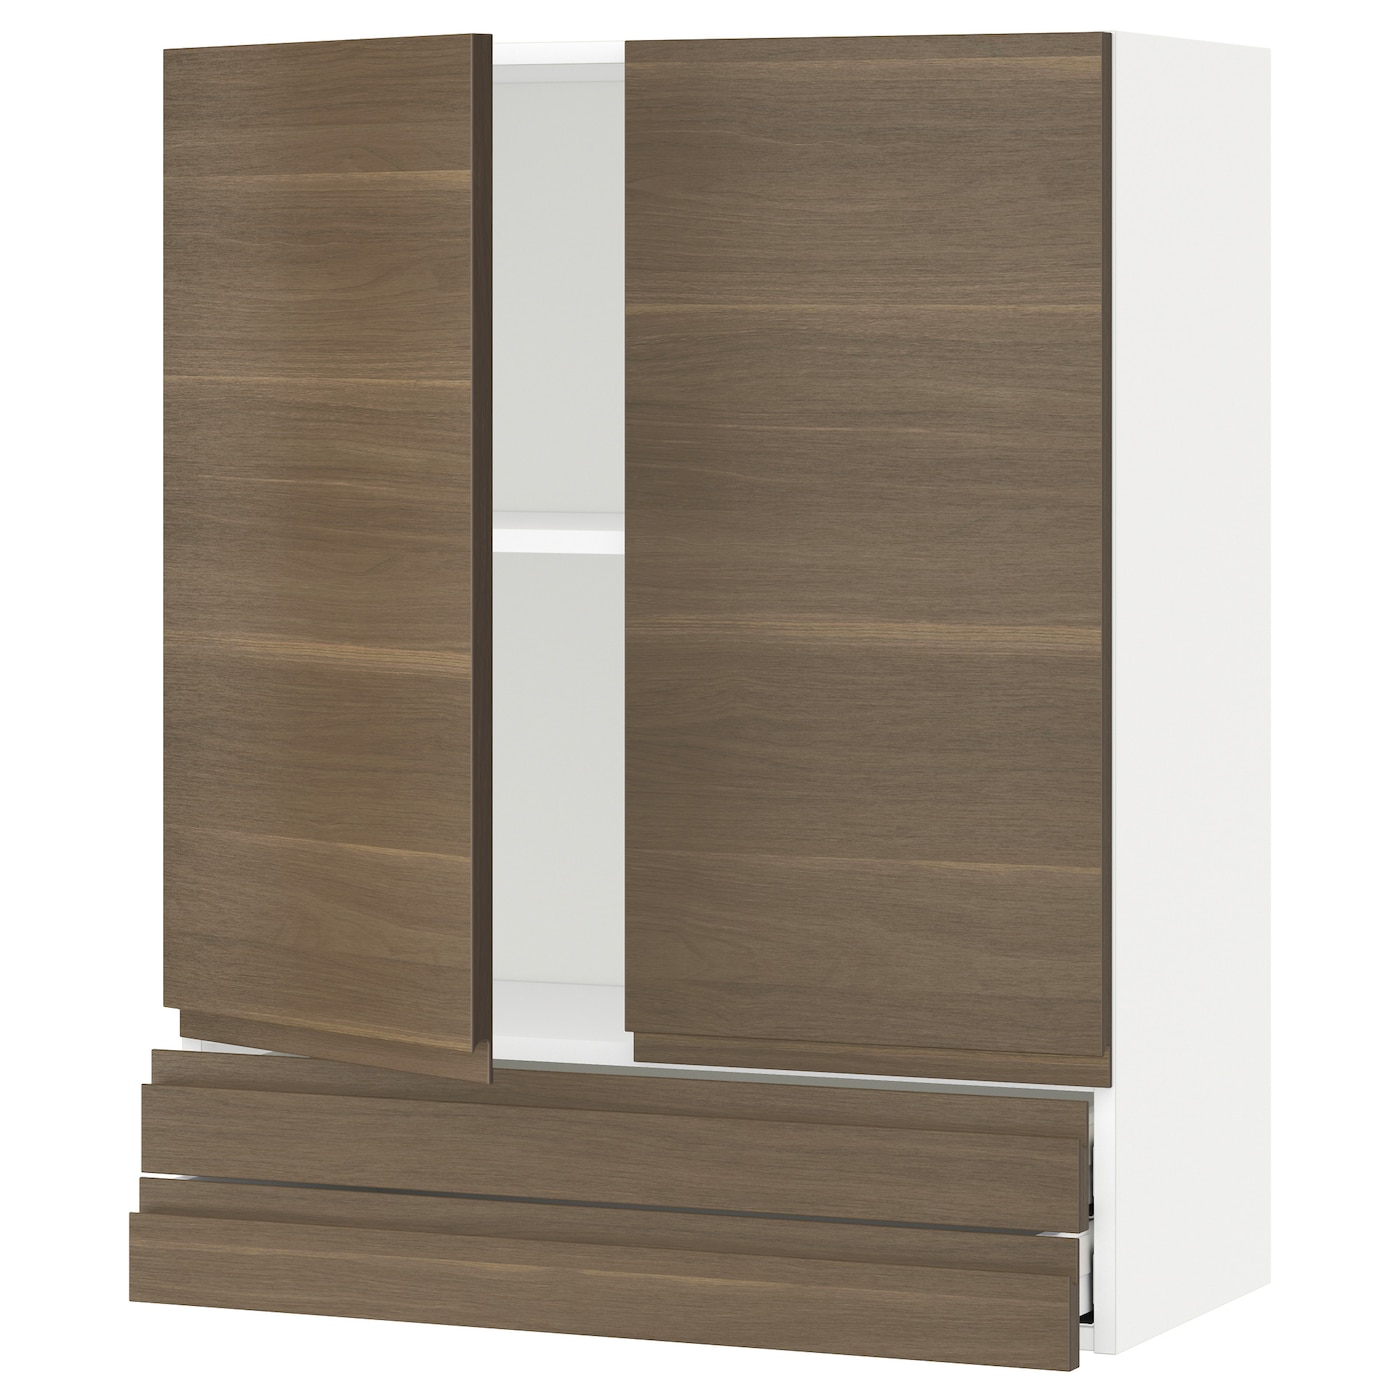 Metod Wall Cabinet With 2 Doors White Voxtorp High Gloss: METOD/MAXIMERA Wall Cabinet W 2 Doors/2 Drawers White